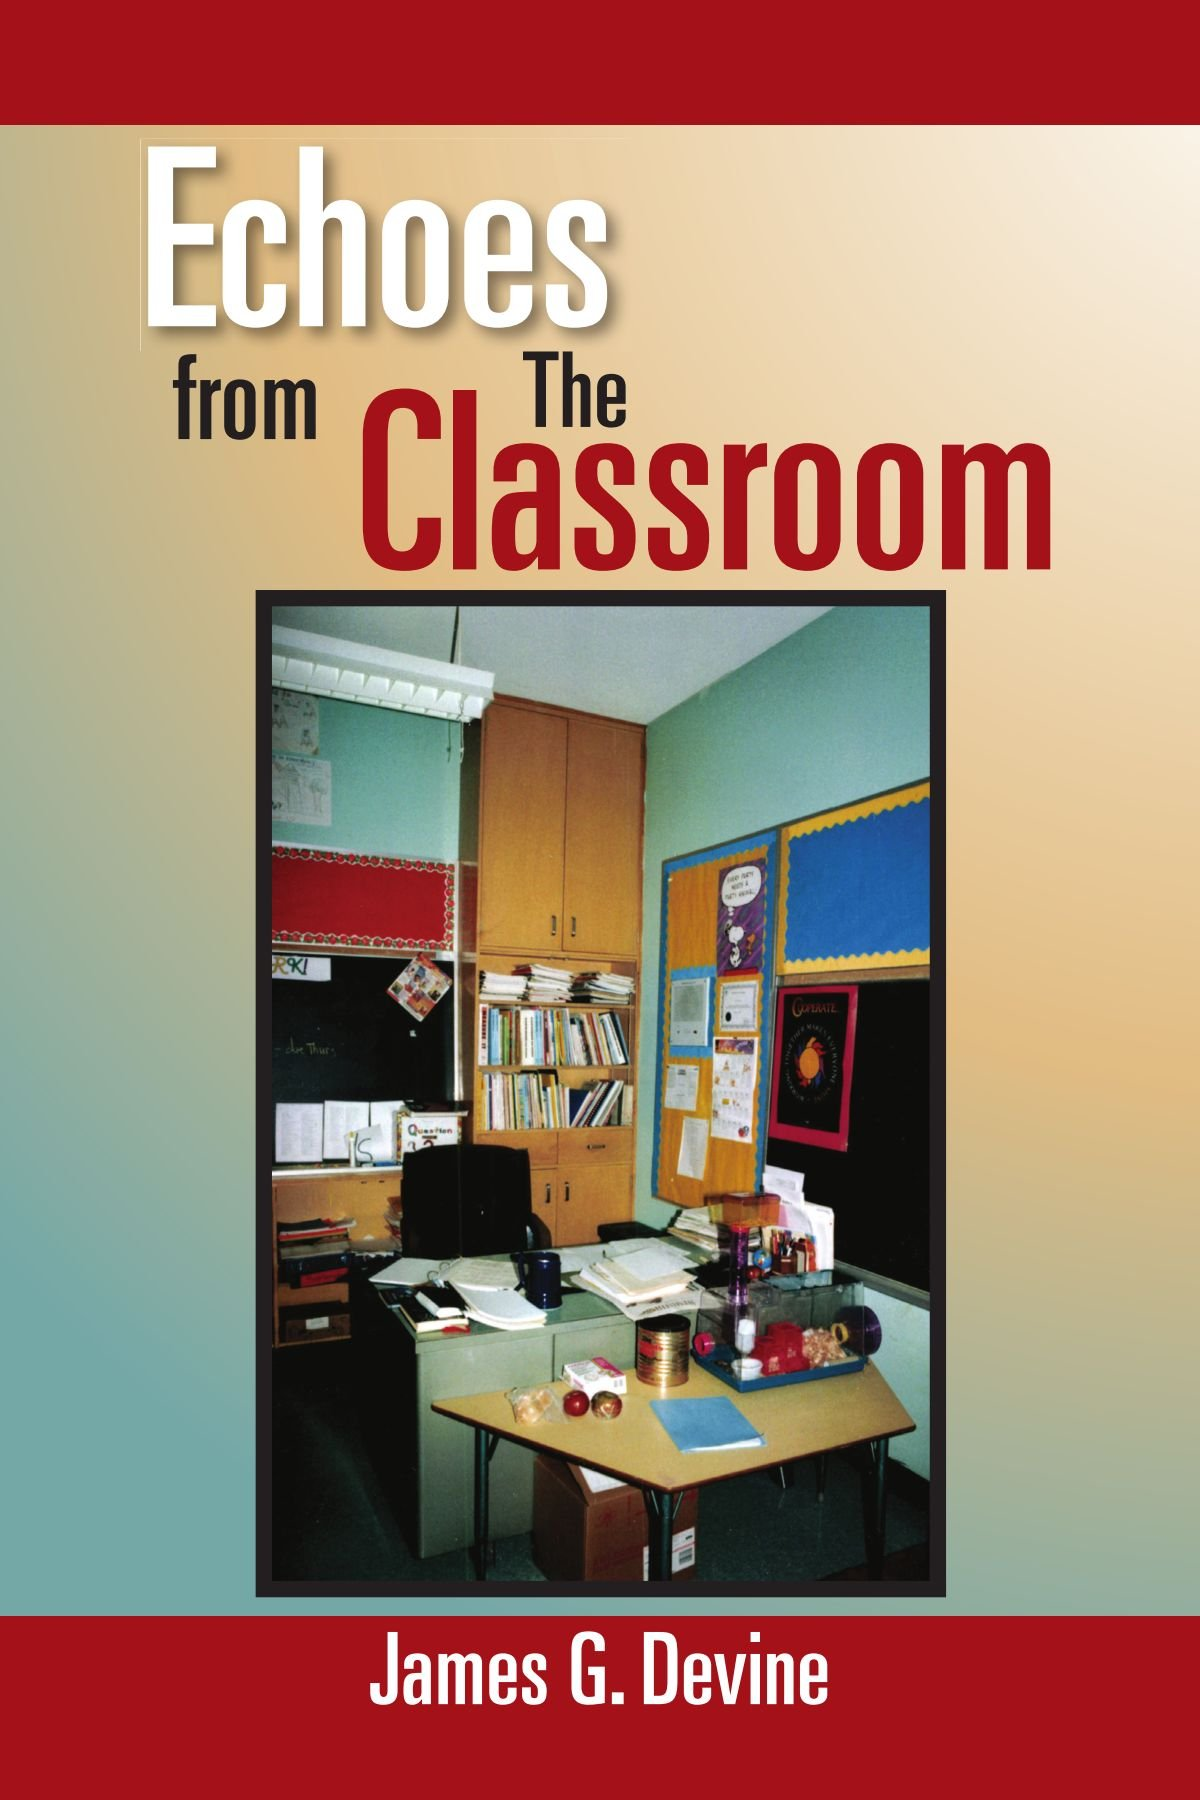 Echoes from The Classroom